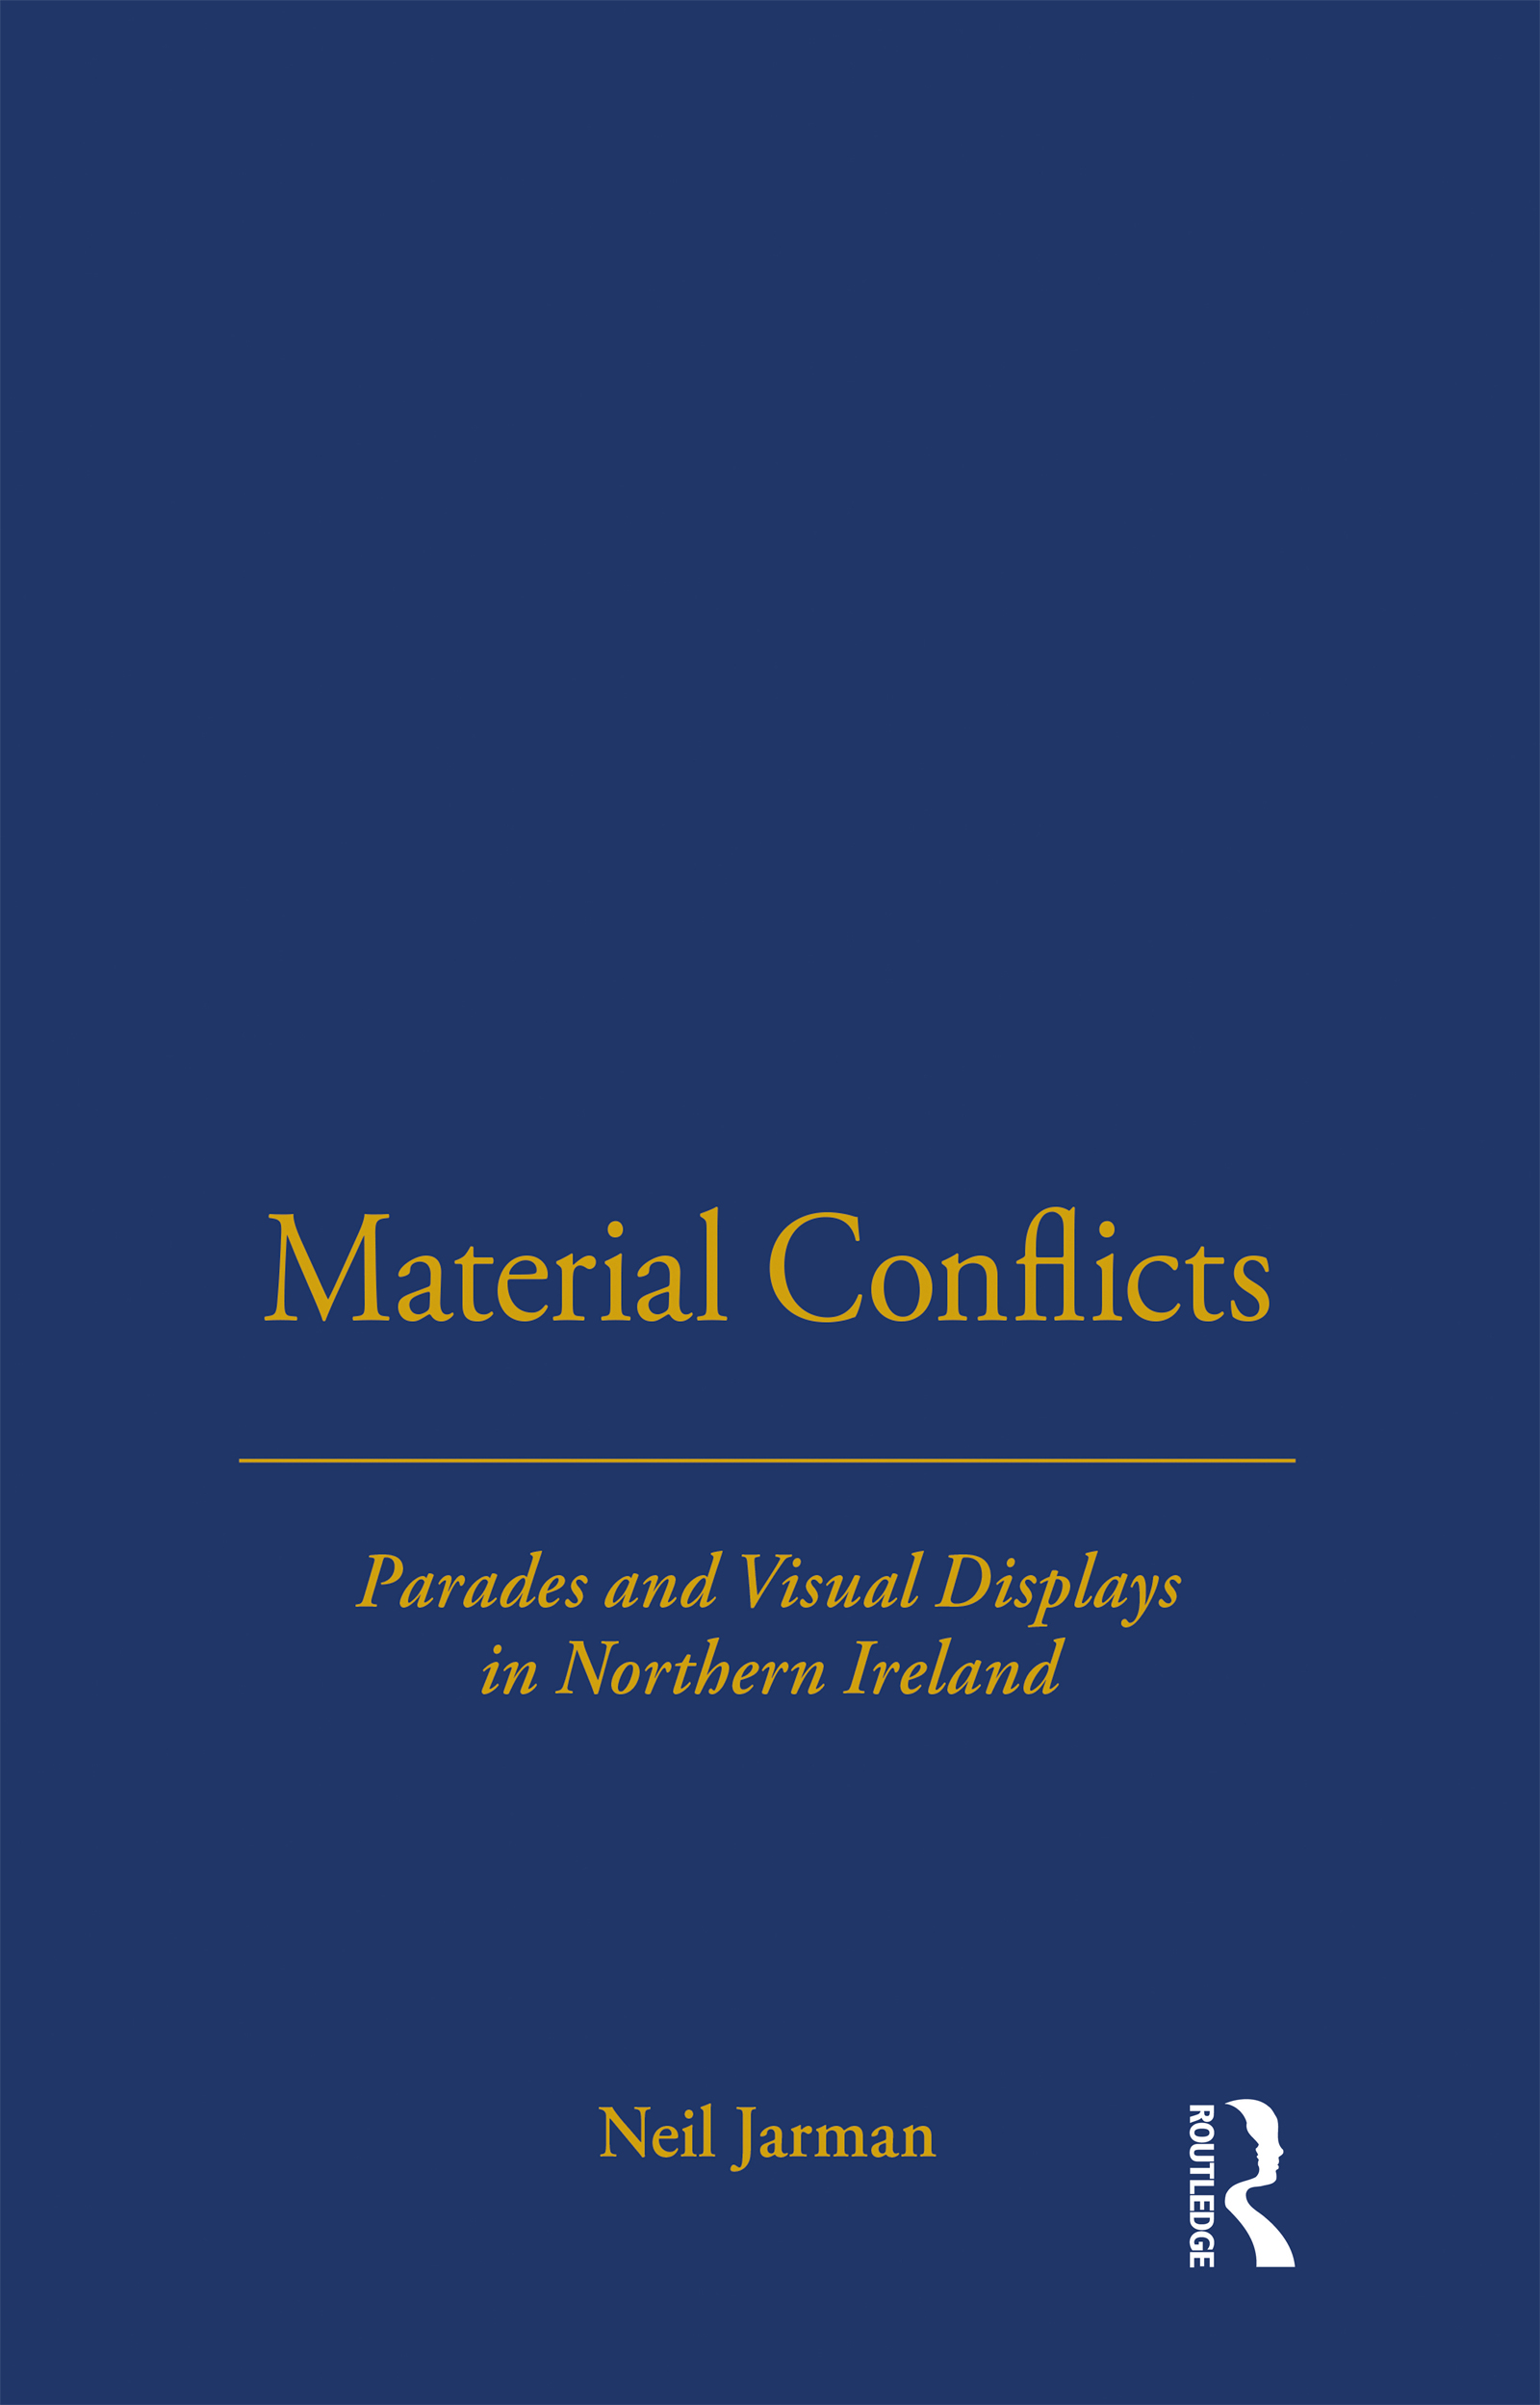 Material Conflicts